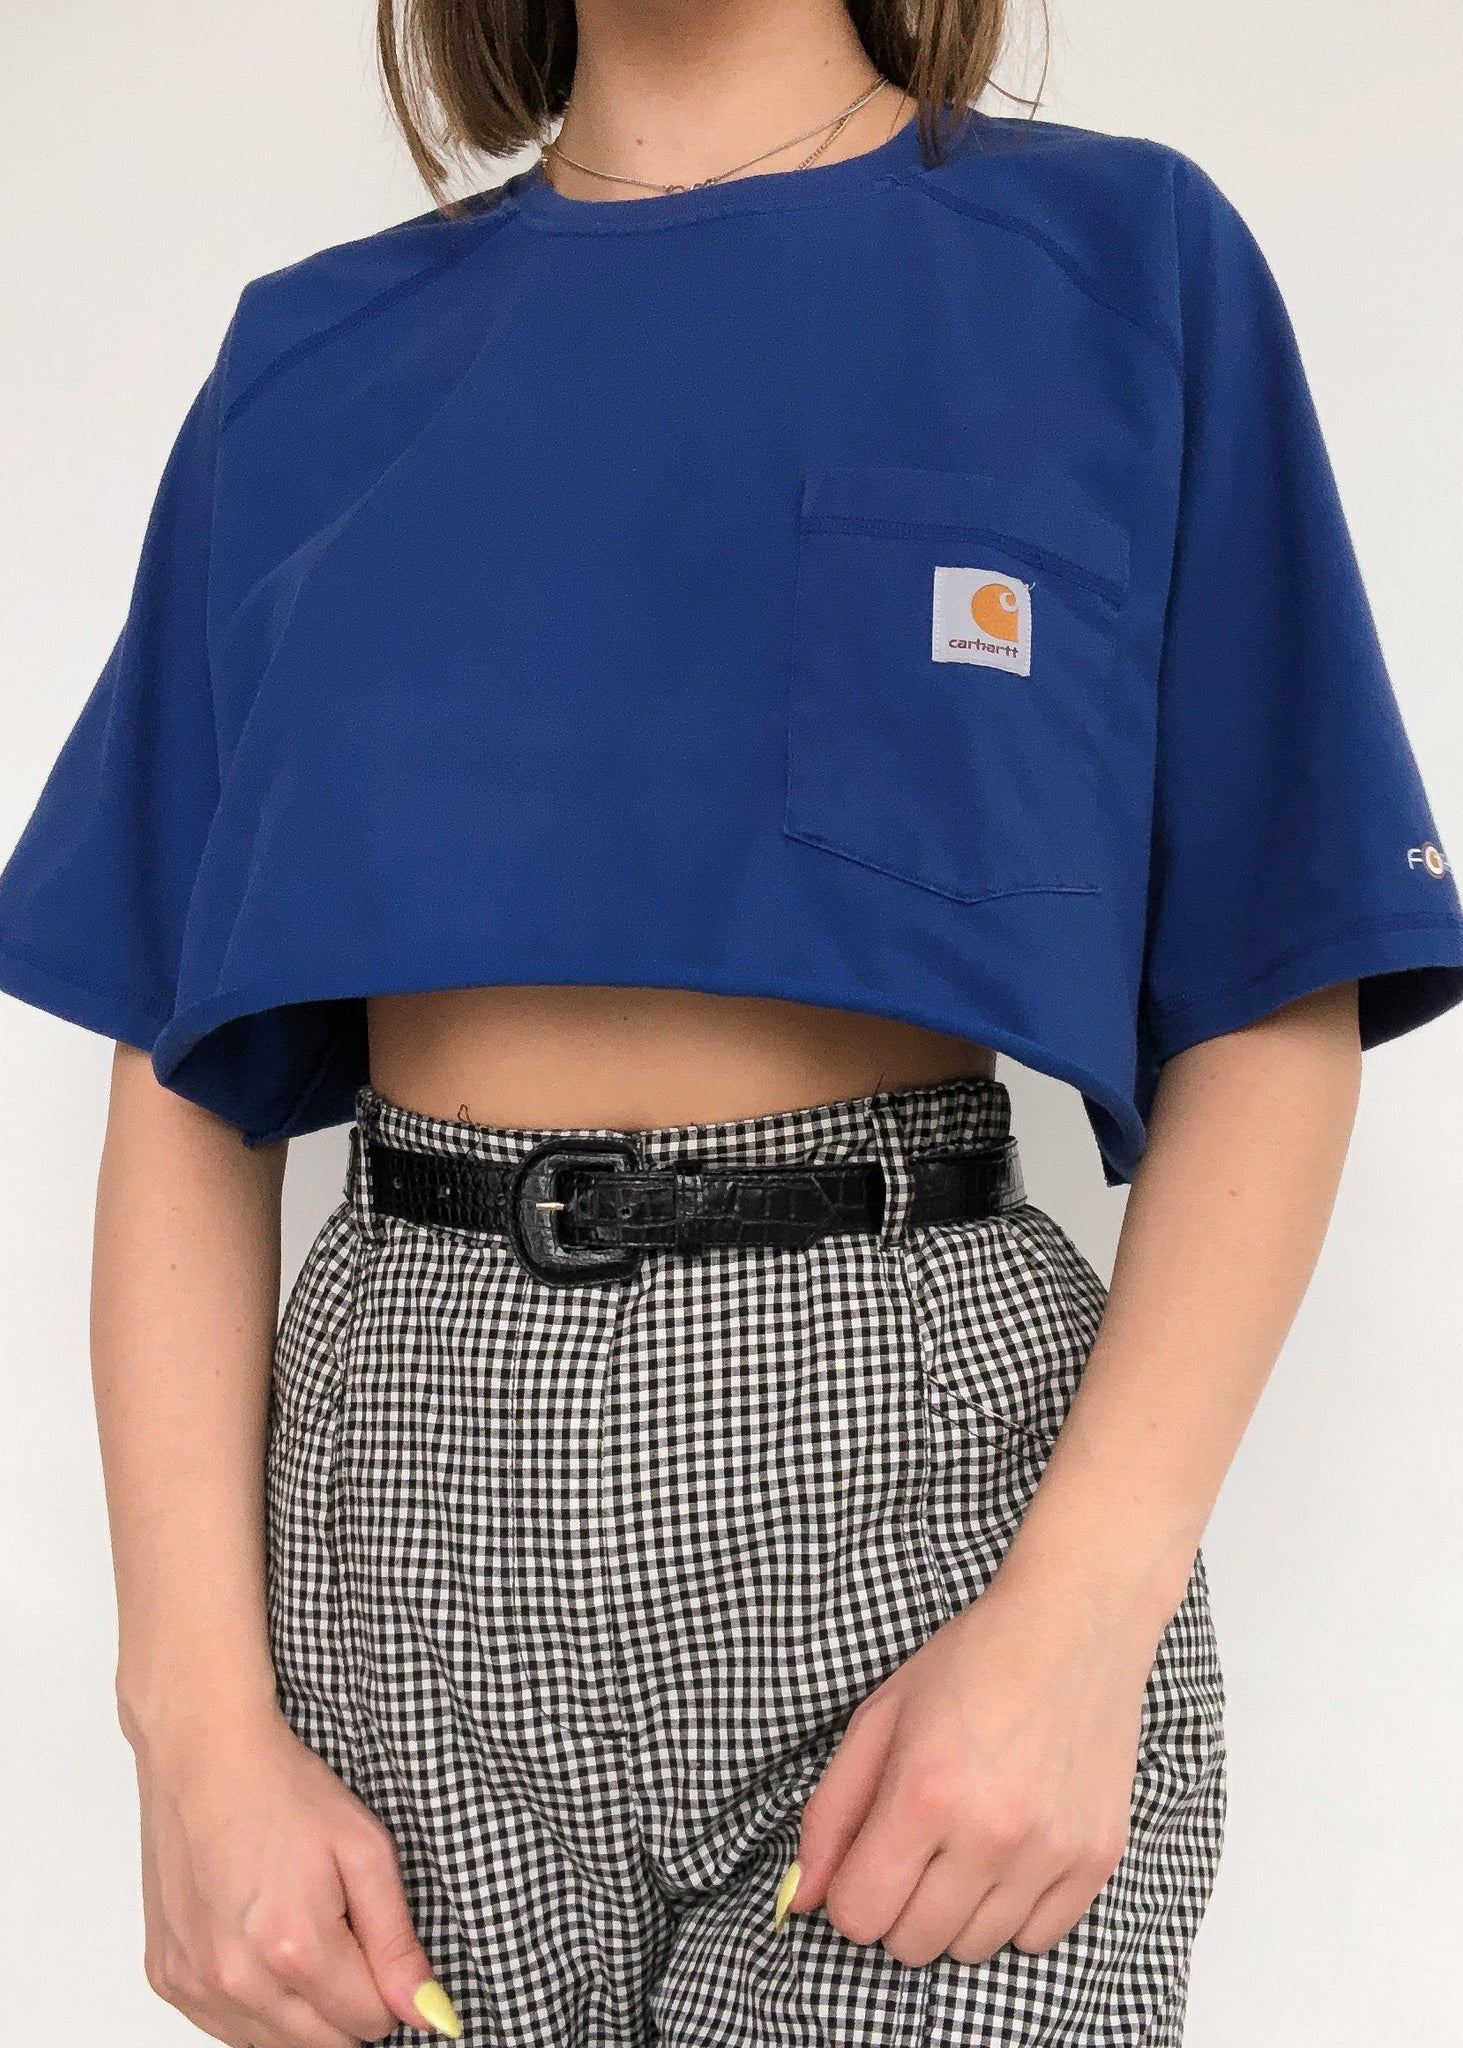 Royal Blue Carhartt Tee